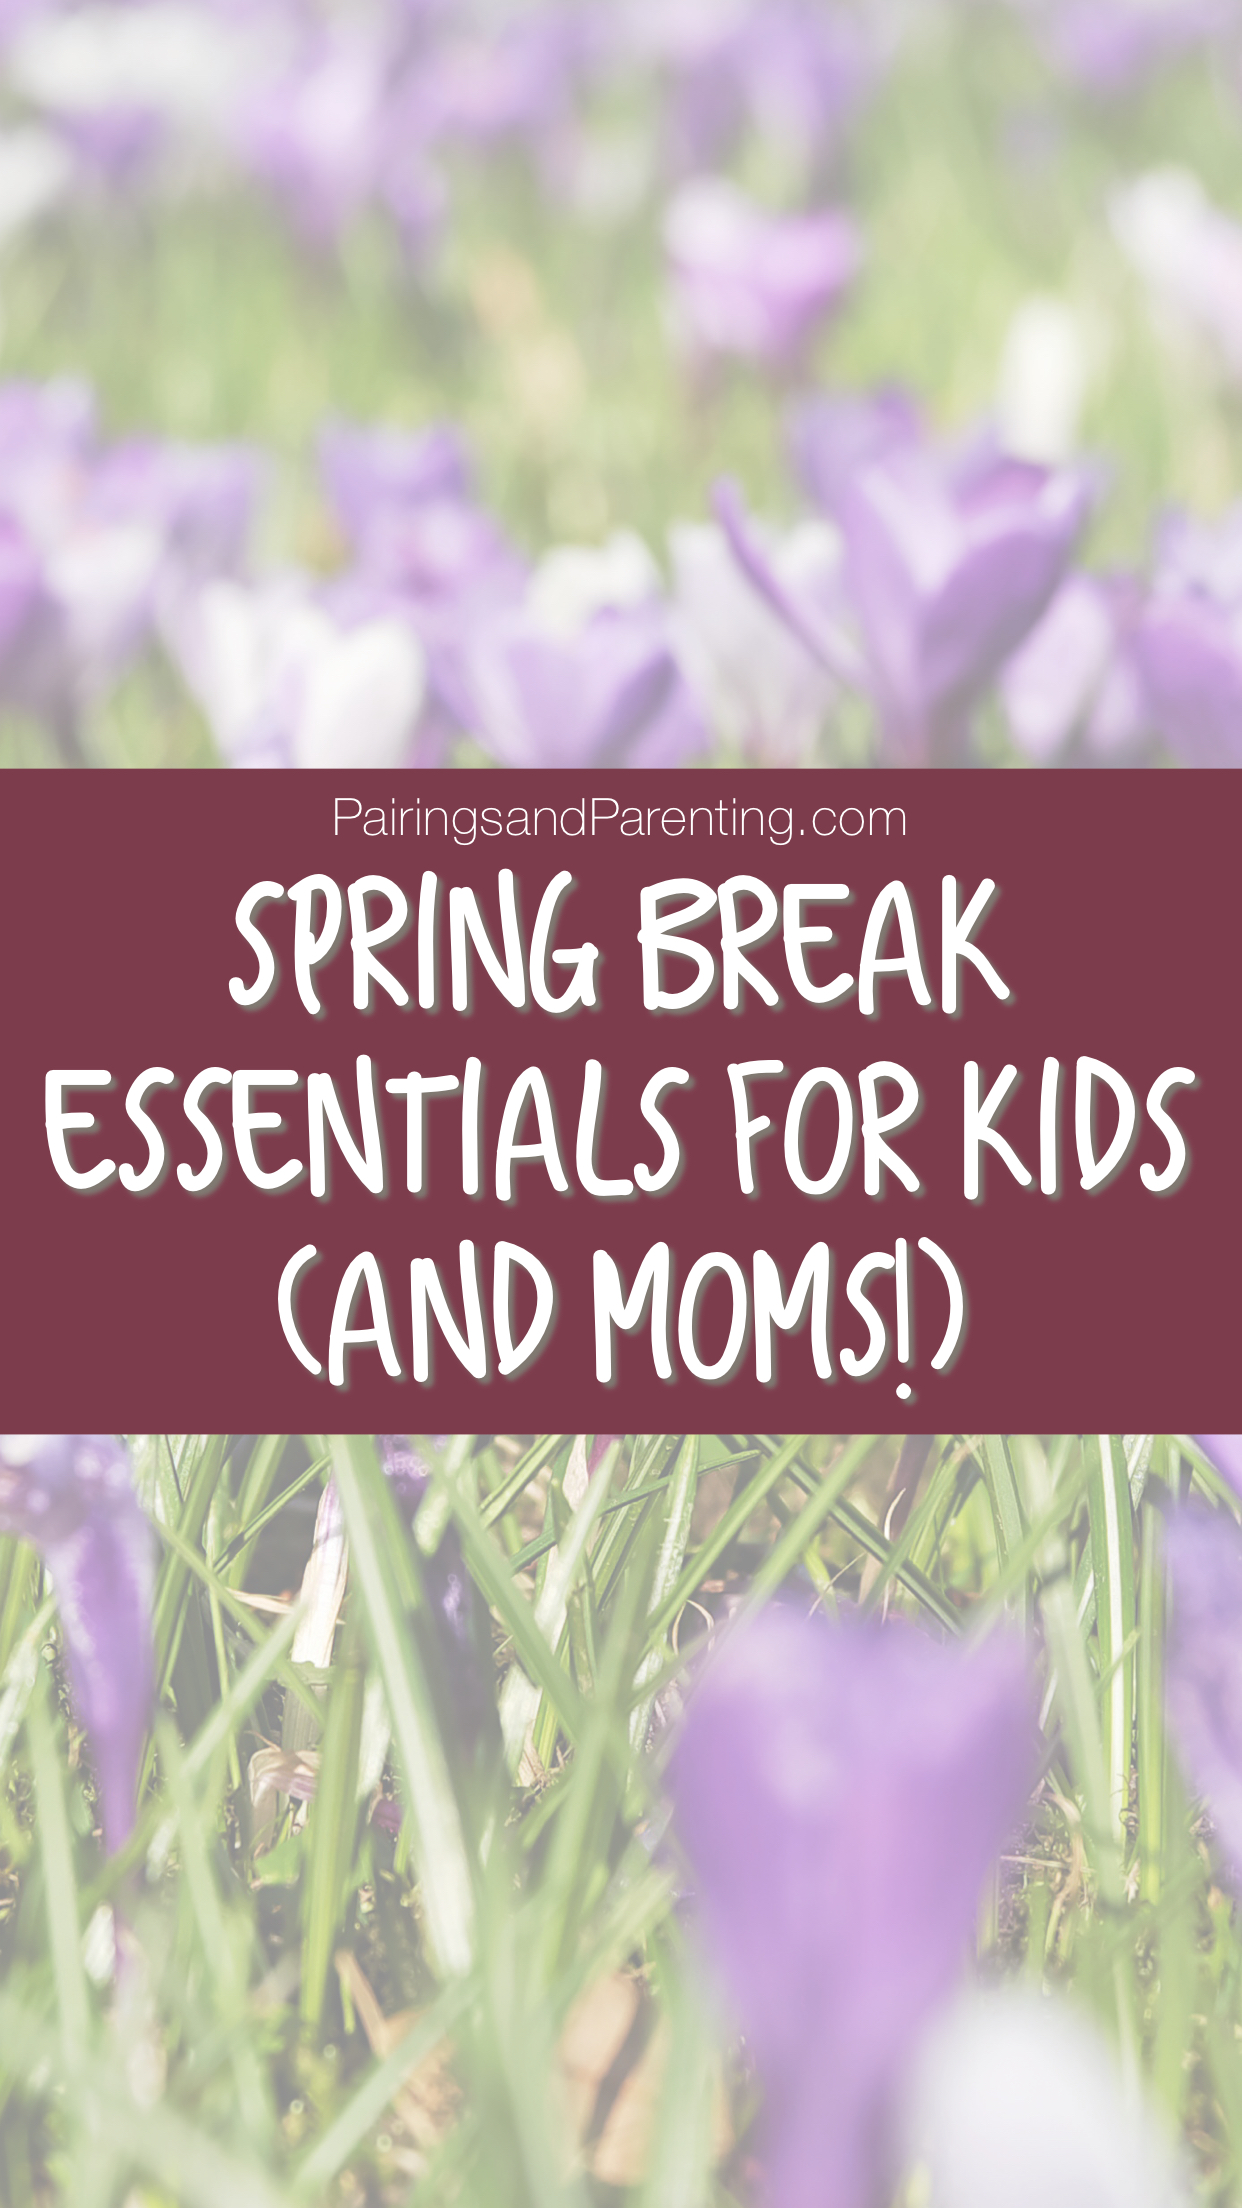 Spring Break Essentials List for Kis (and moms!)